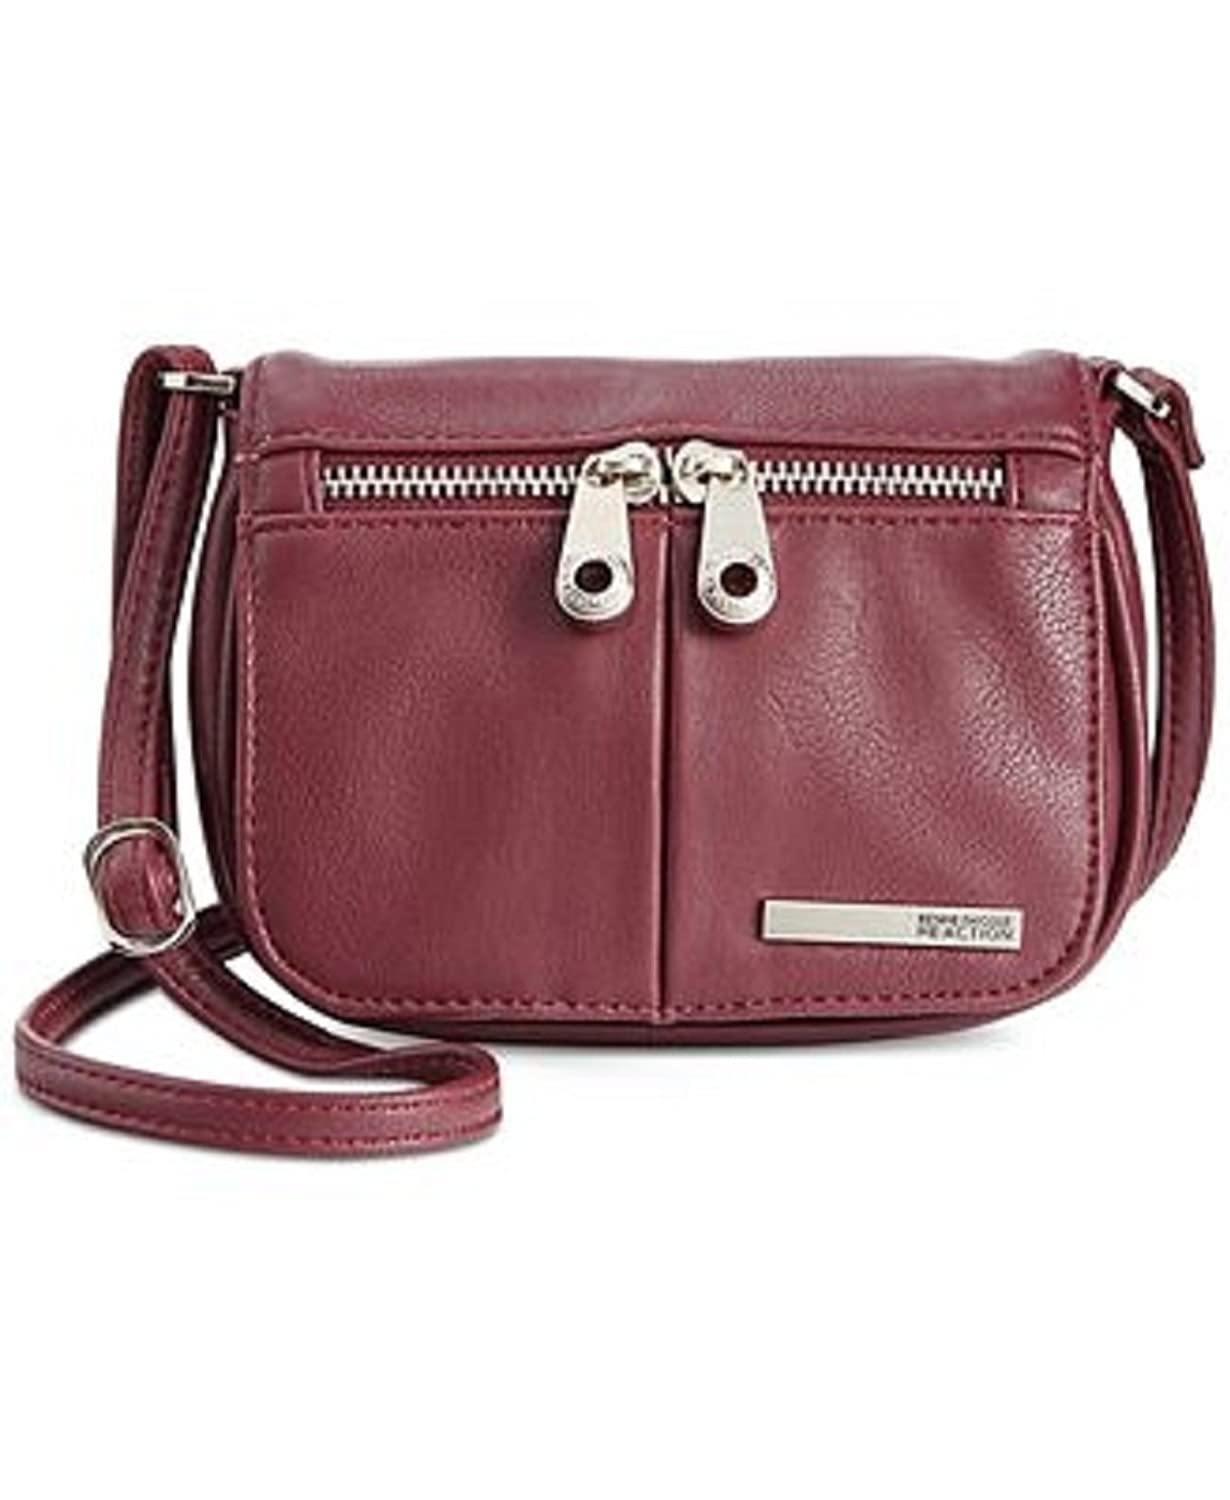 Kenneth Cole Reaction Wooster Street Small Flap Crossbody